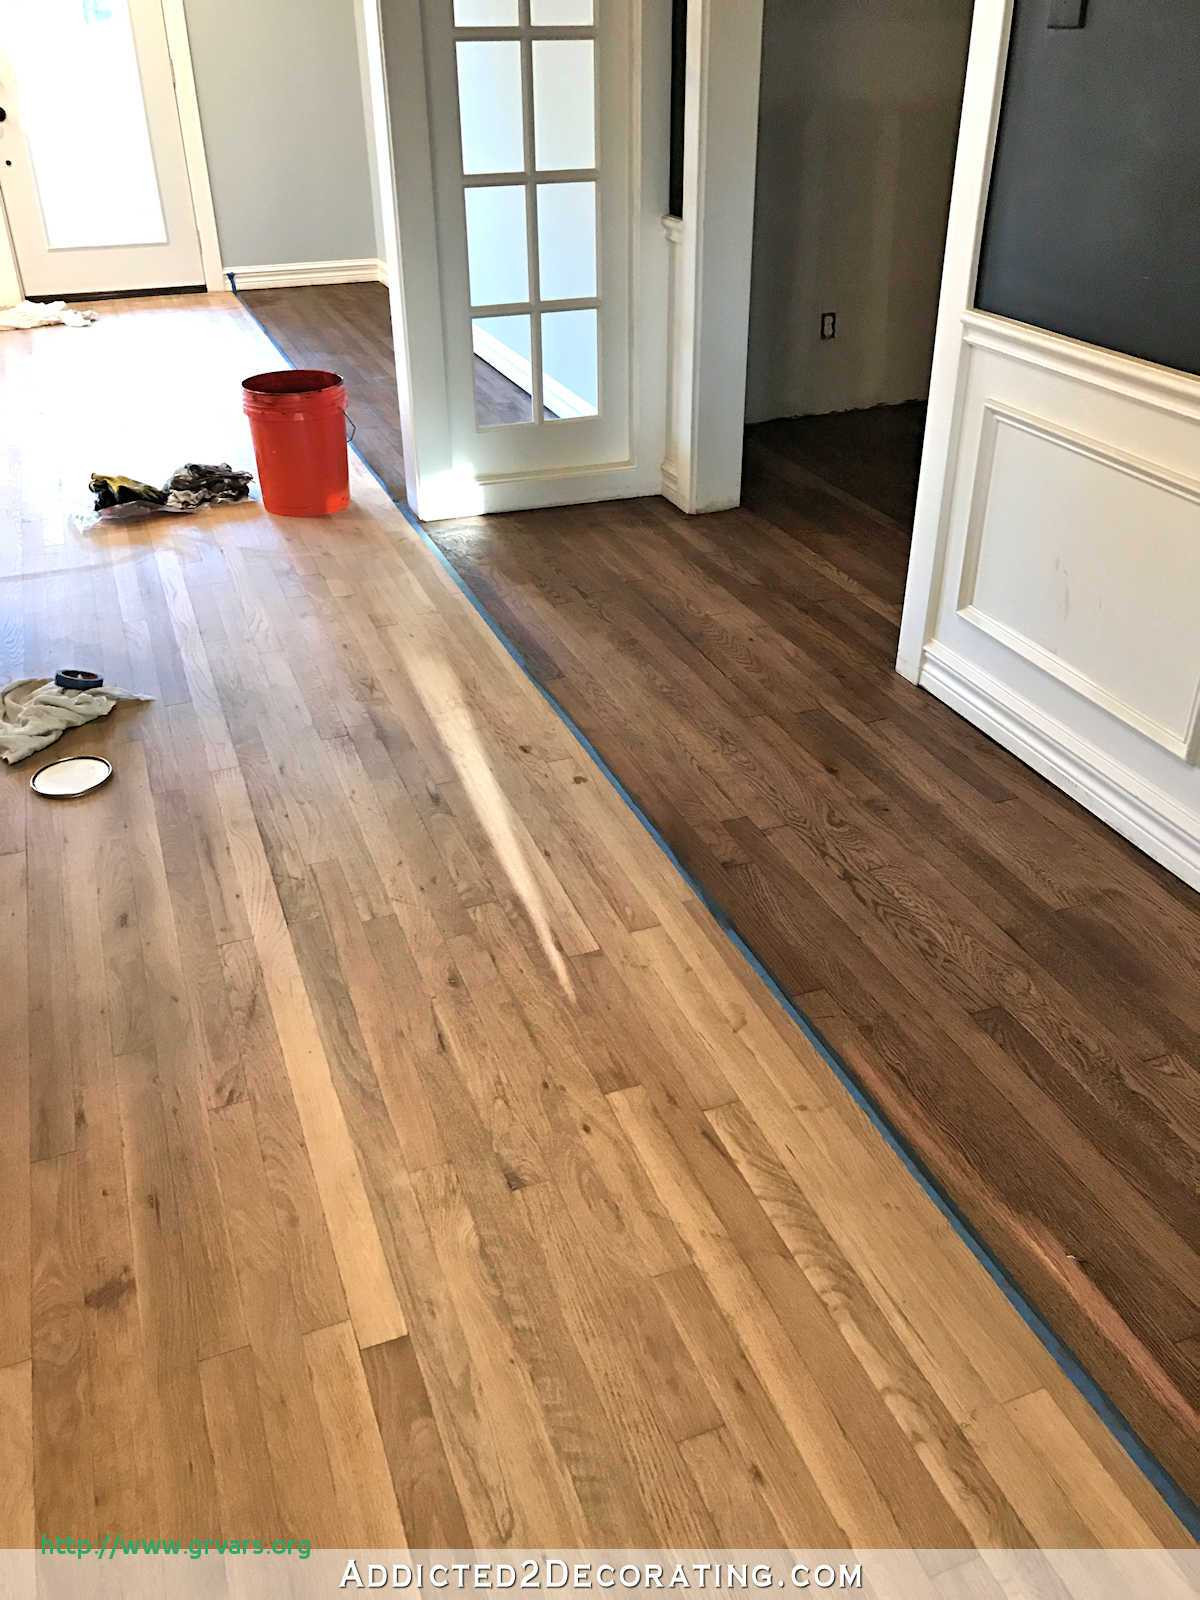 humidity range for hardwood floors of 24 beau changing the color of hardwood floors ideas blog throughout staining red oak hardwood floors 6 stain on partial floor in entryway and music